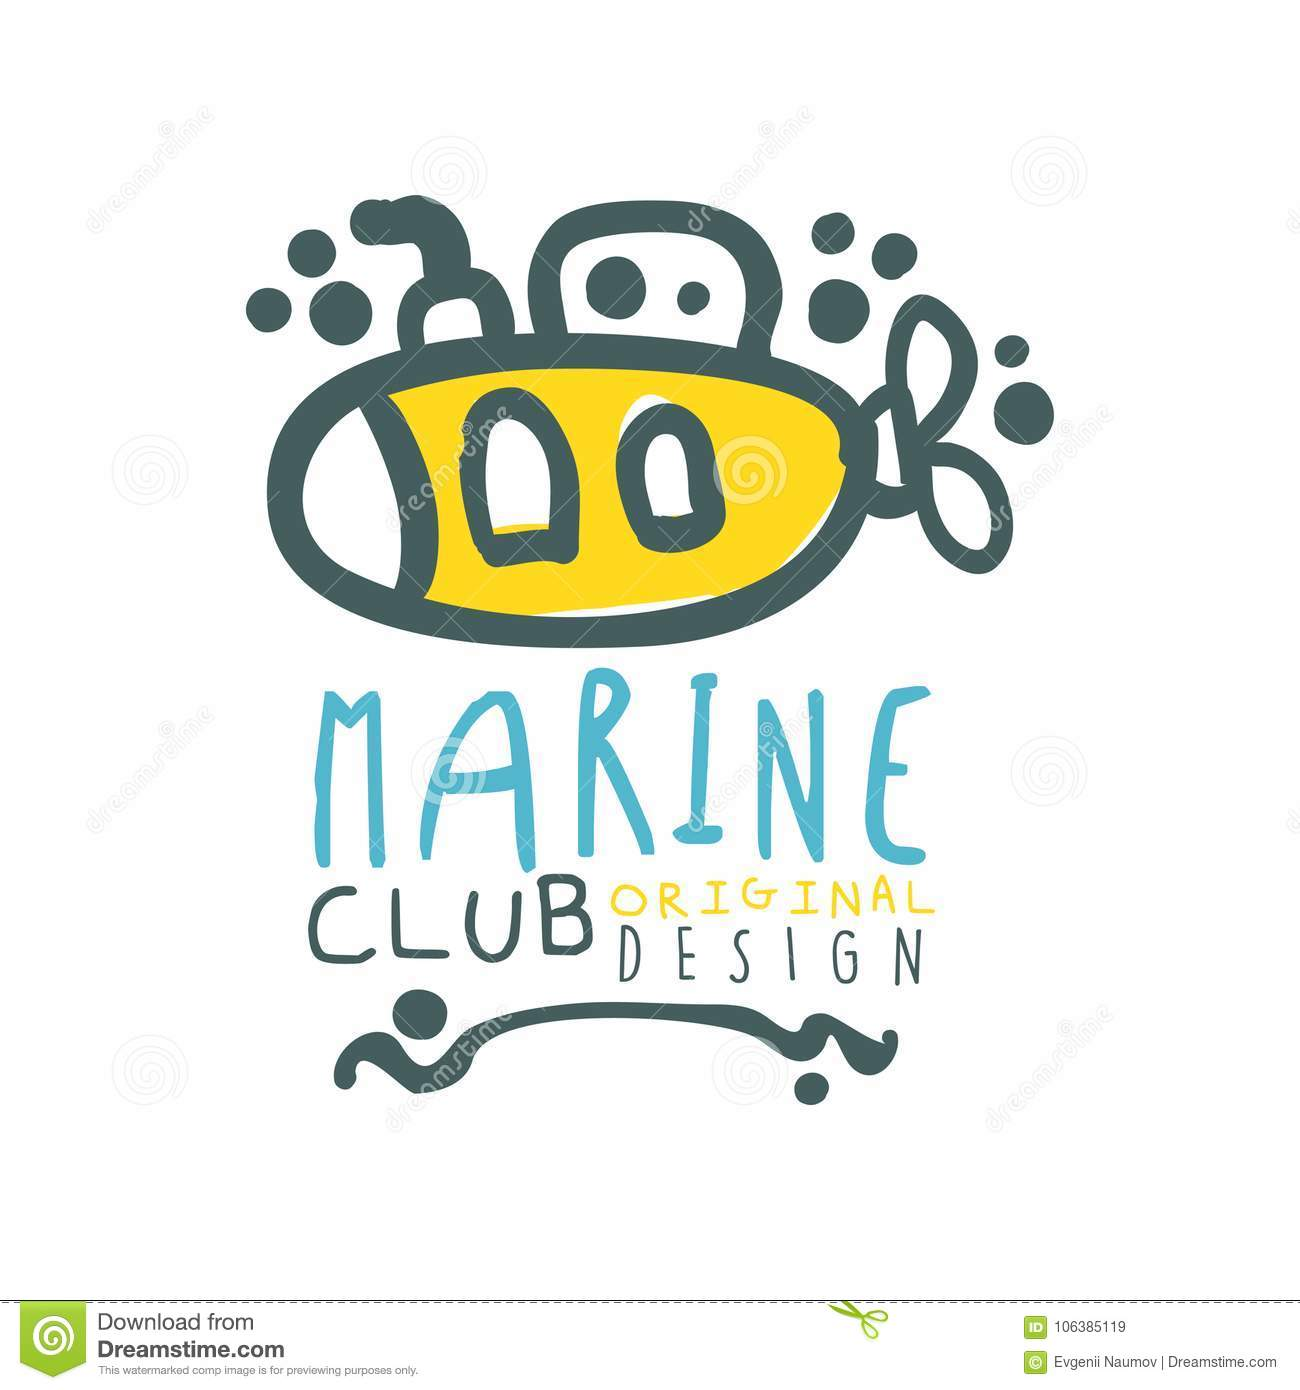 original sea club logo design template with lettering and submarine